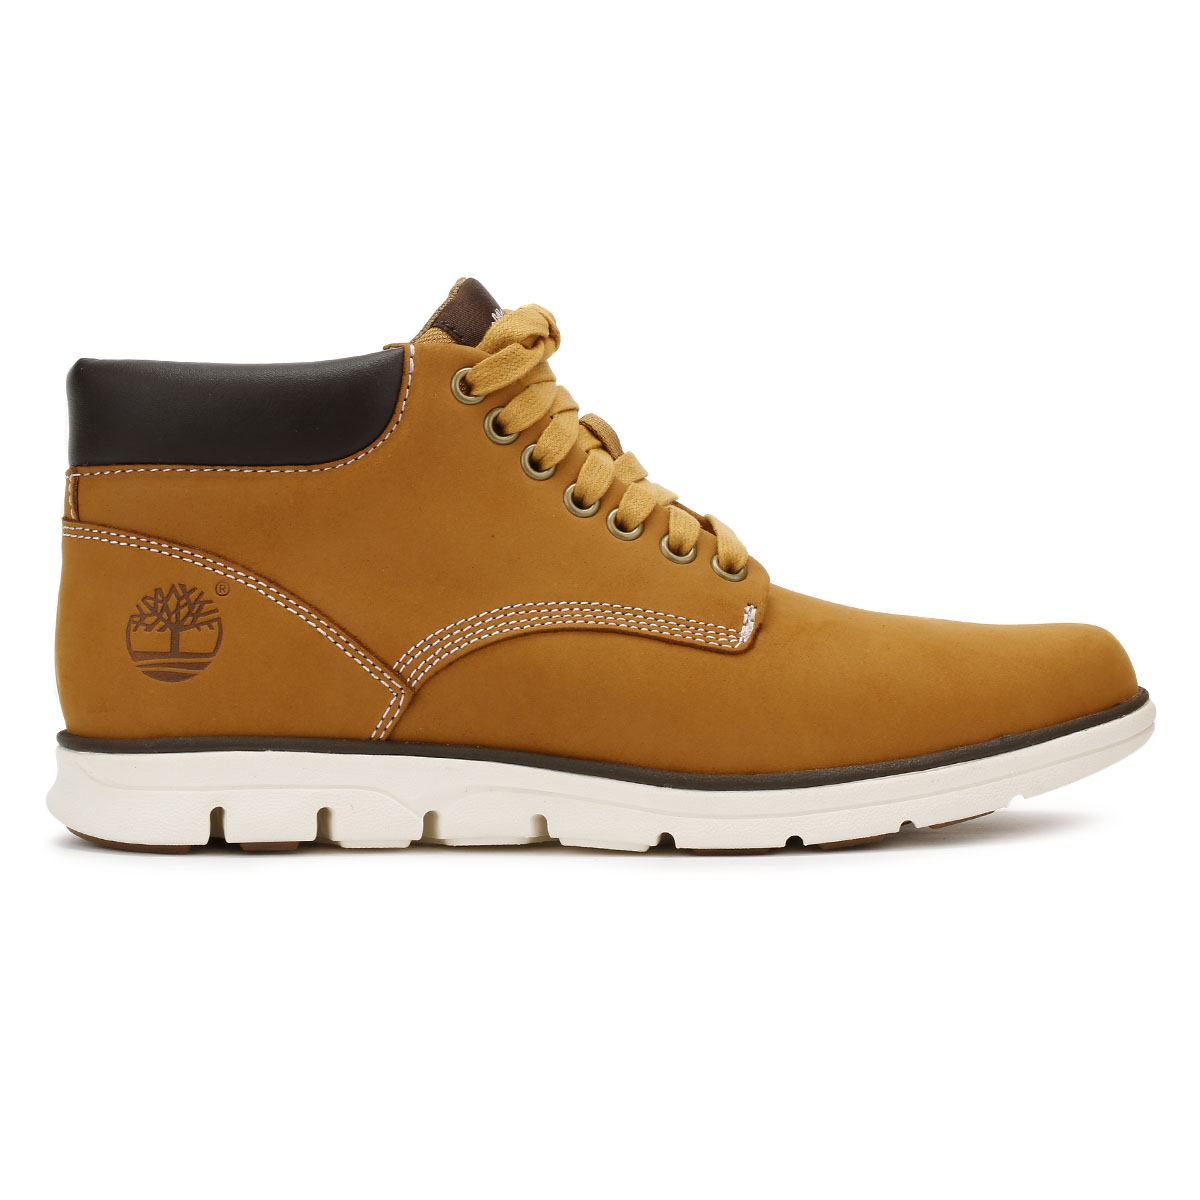 timberlands mens chukka boots wheat yellow bradstreet